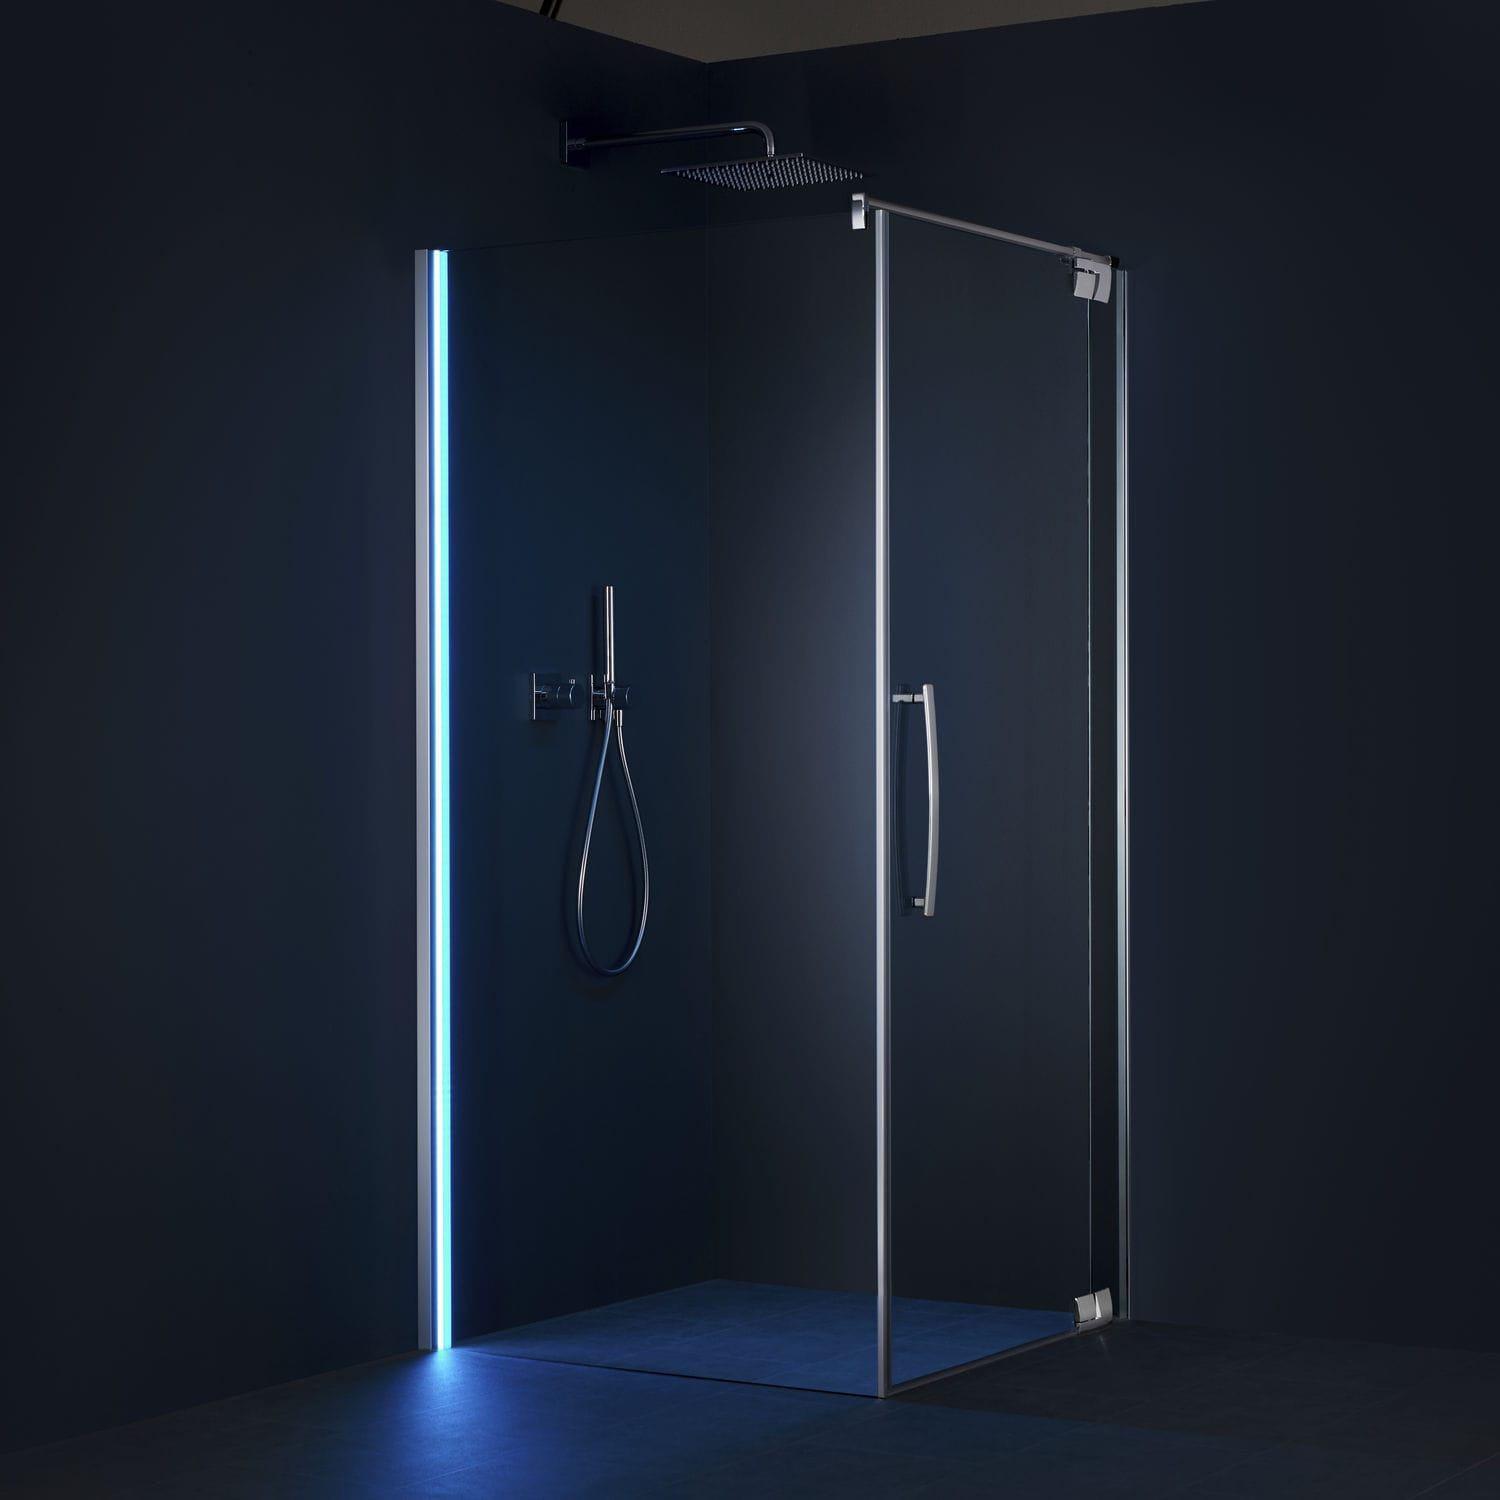 Eitelkeit Palme Duschabtrennungen Dekoration Von Glass Shower Cubicle / With Pivot Door